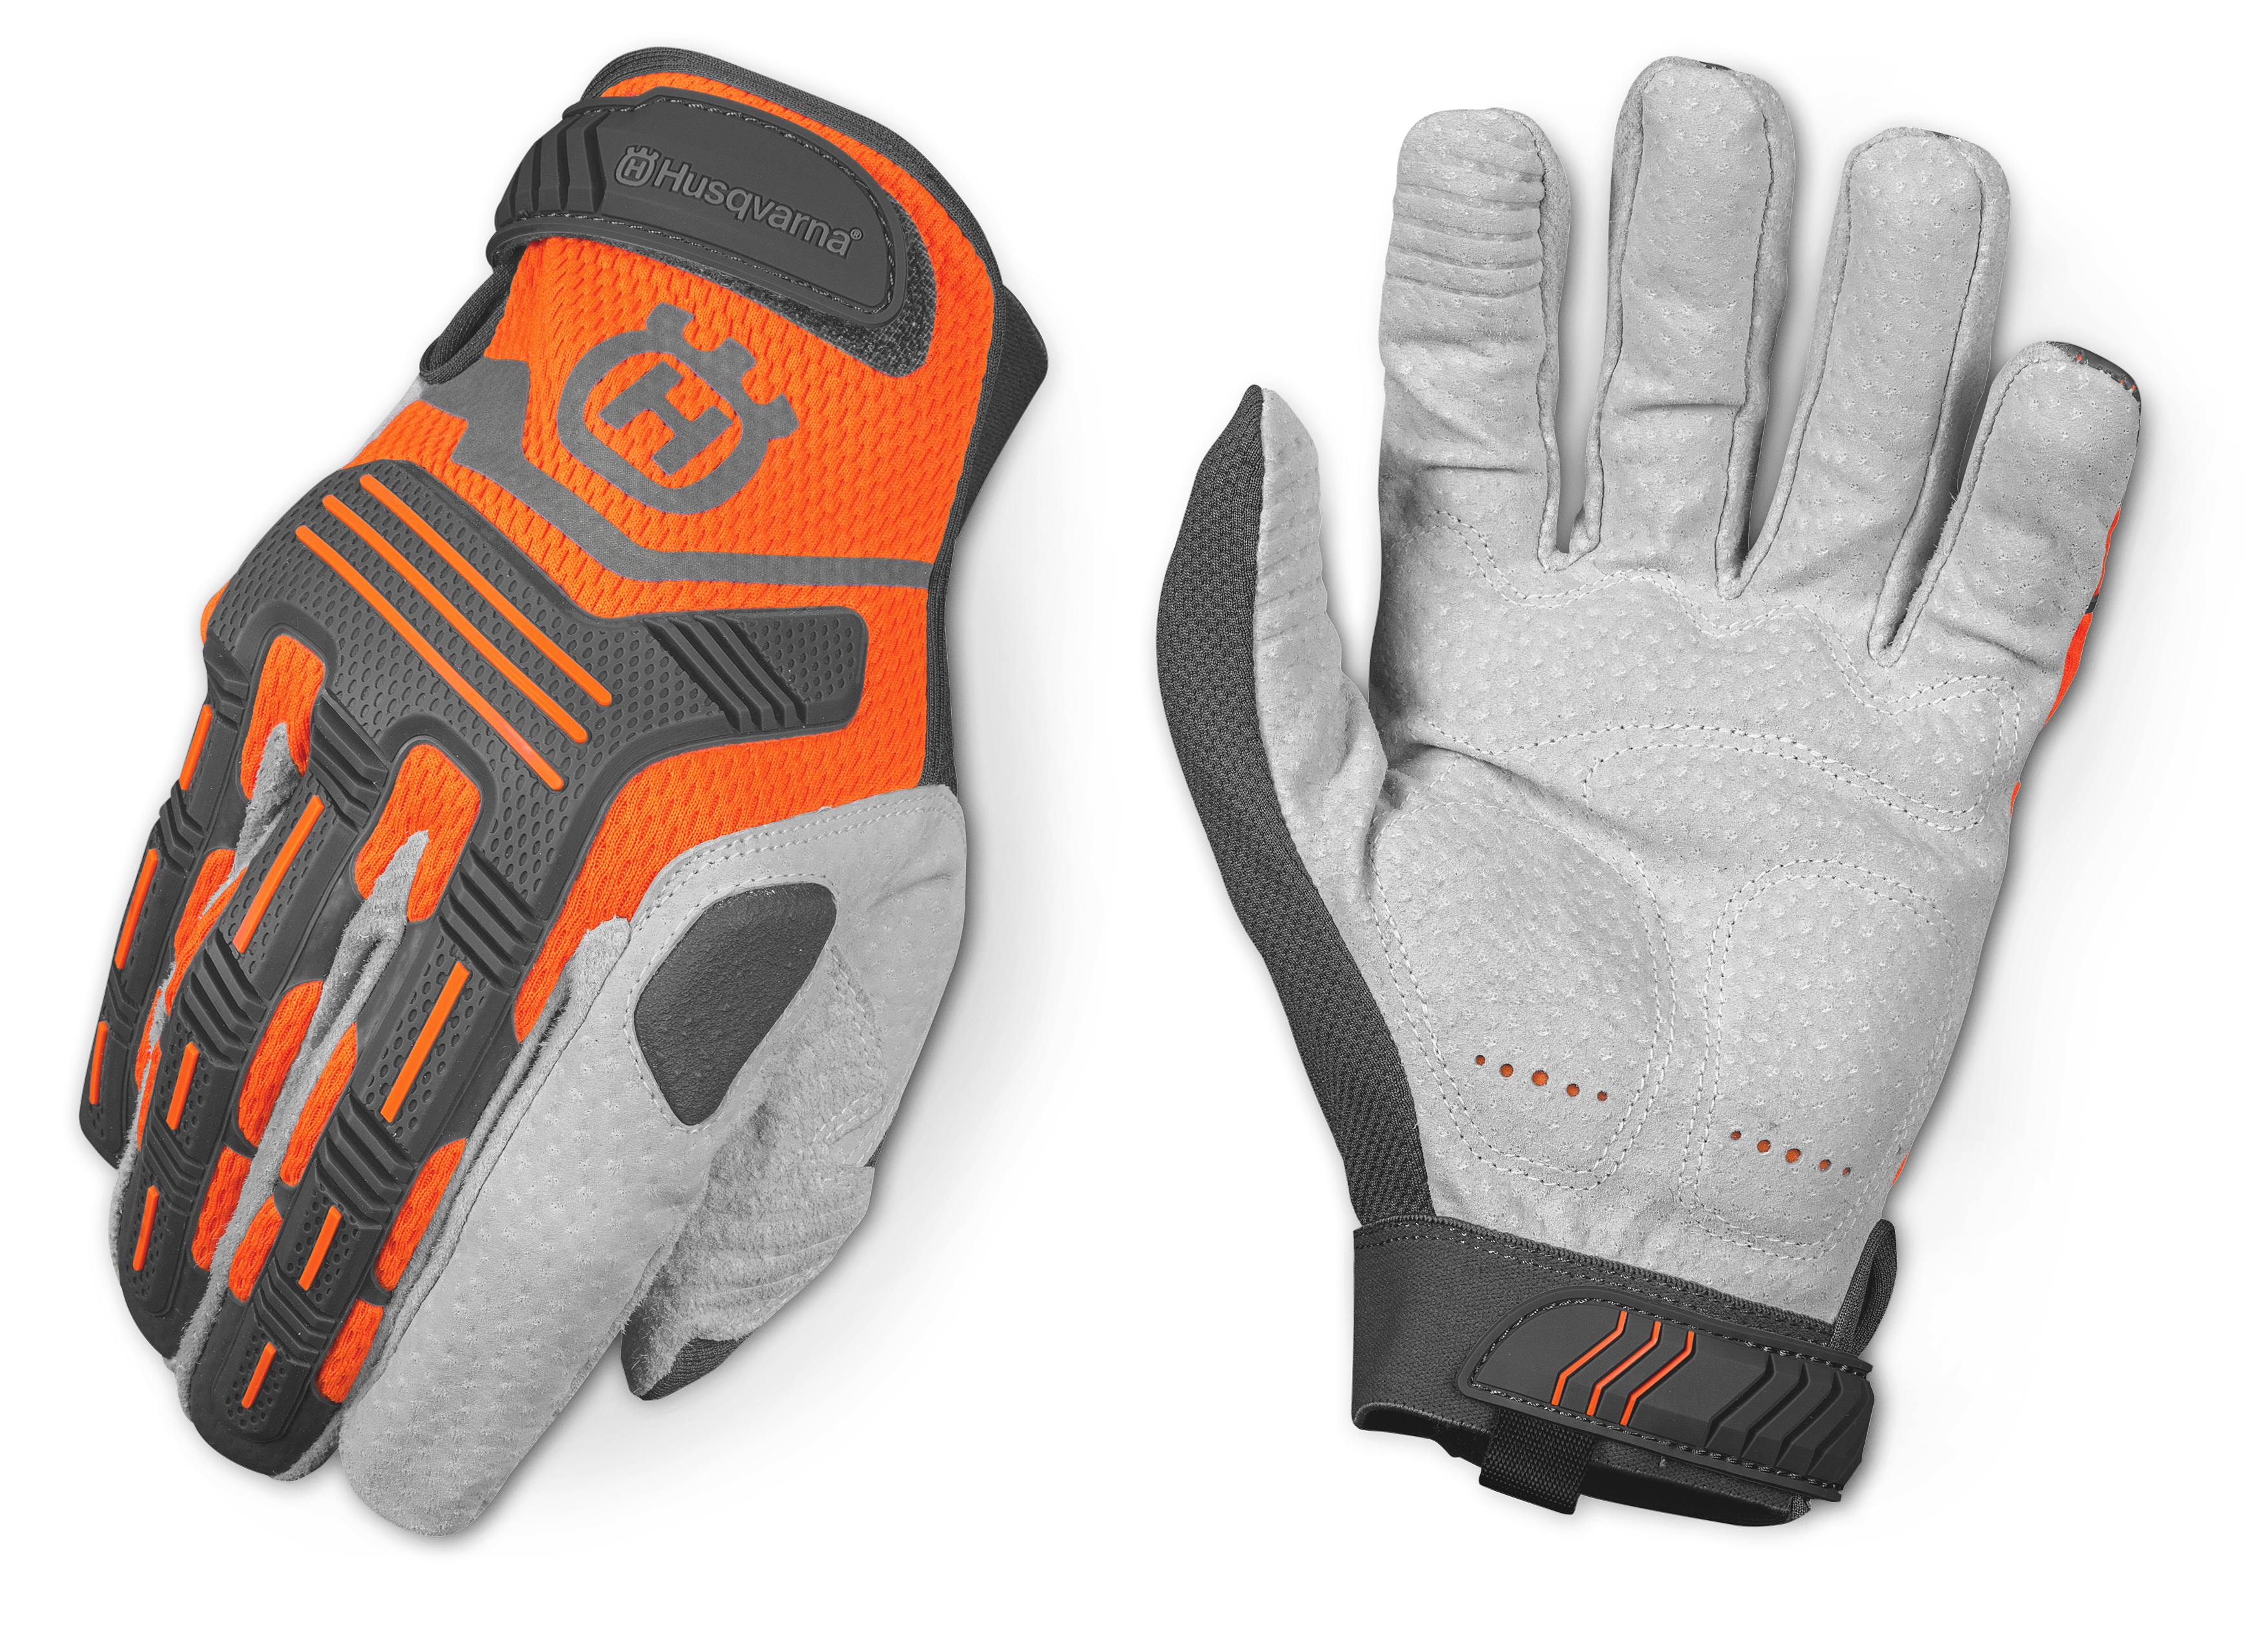 Image for Technical Work Gloves                                                                                                            from HusqvarnaB2C